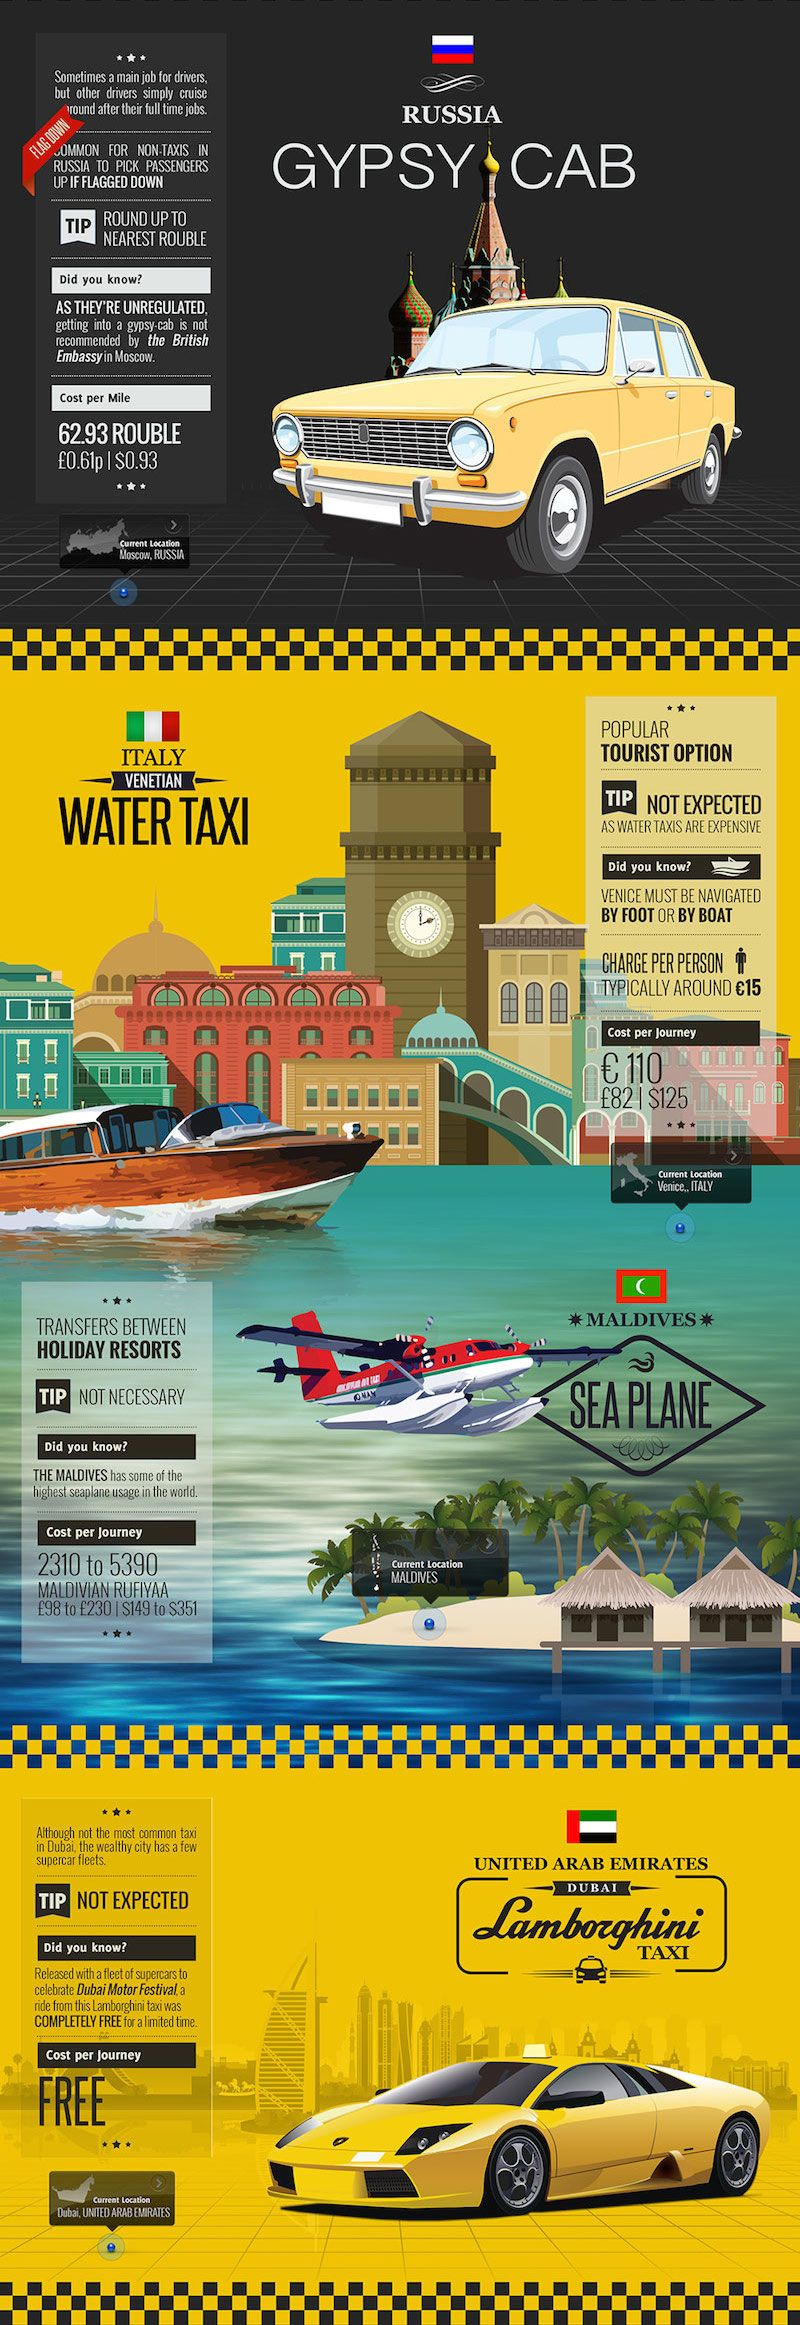 Around the world in 15 taxis - Russia, Italy - Venice, Maldives, United Arab Emirates UAE